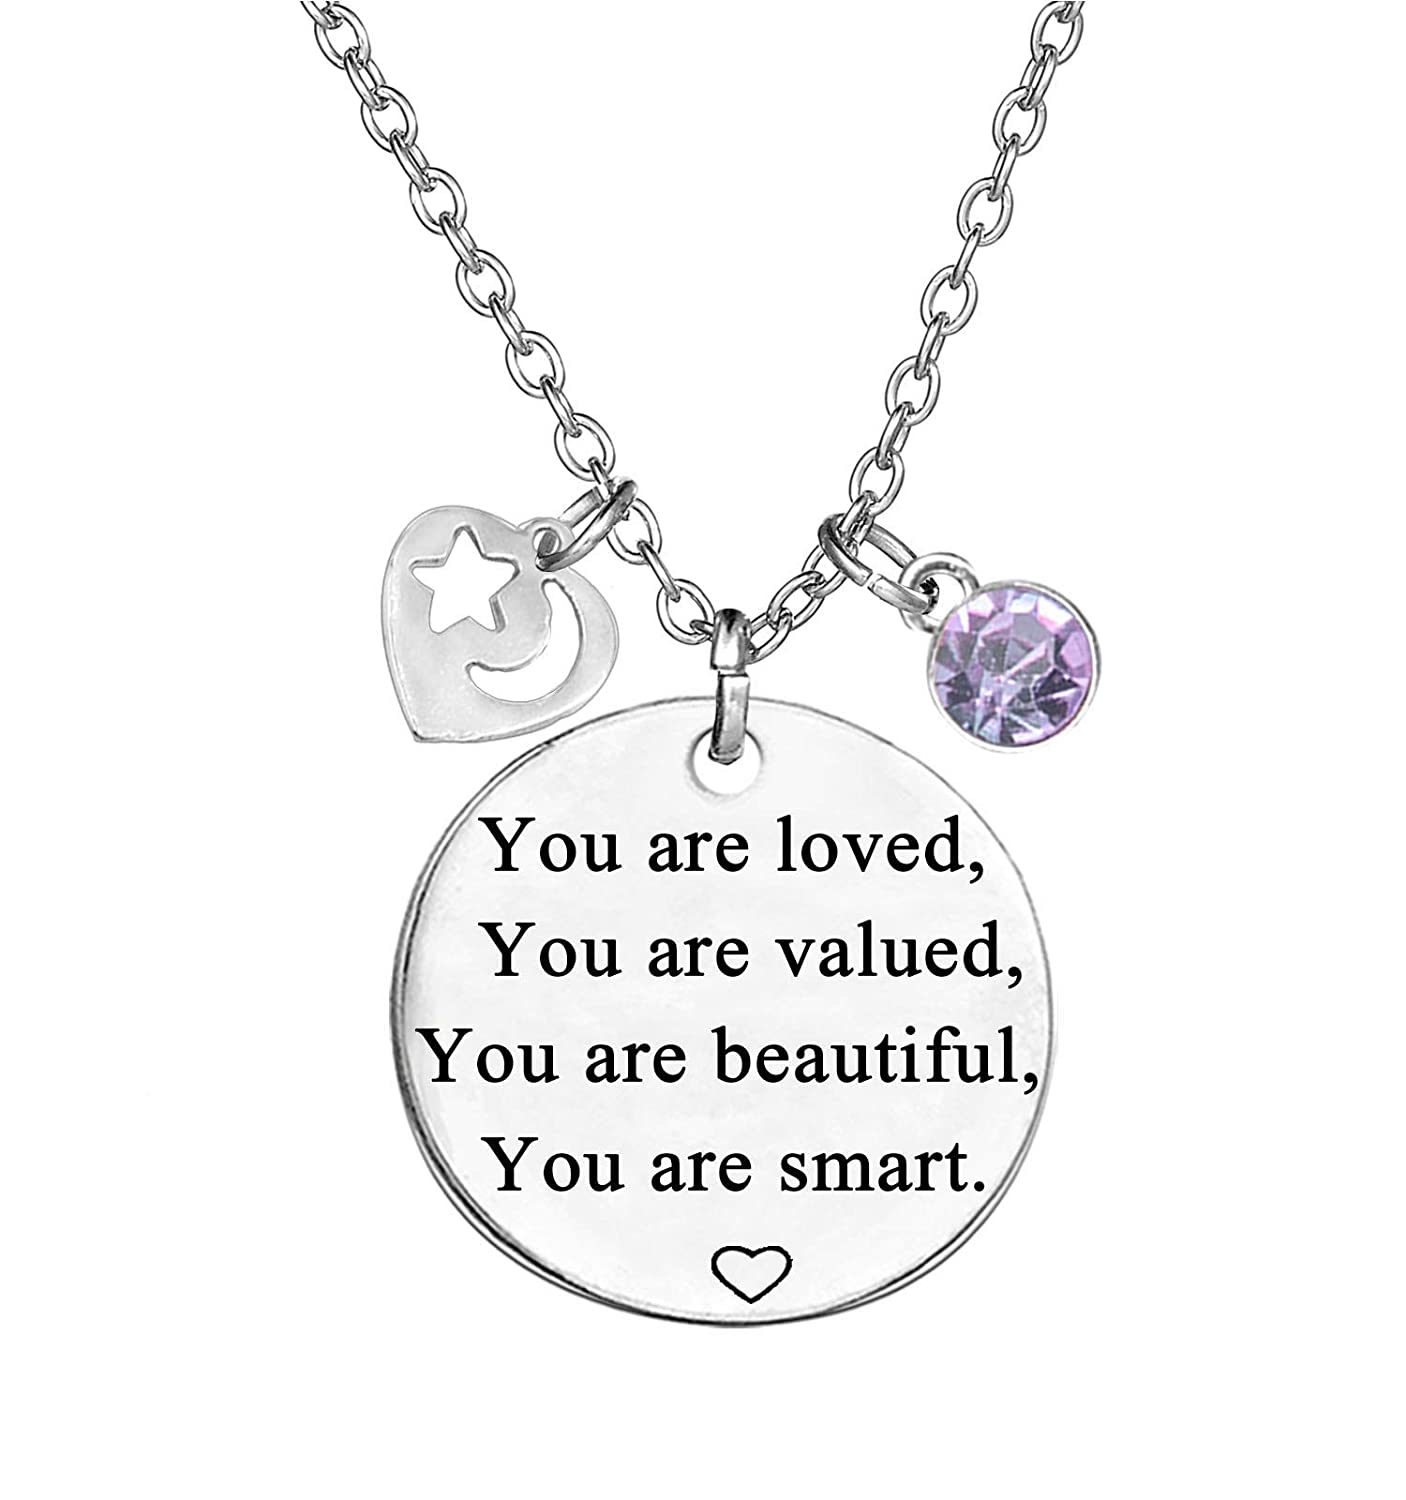 TISDA Birthstone Crystals Necklace, You are Loved You are Valued You are Beautiful You are Smart Necklace 18 Chain